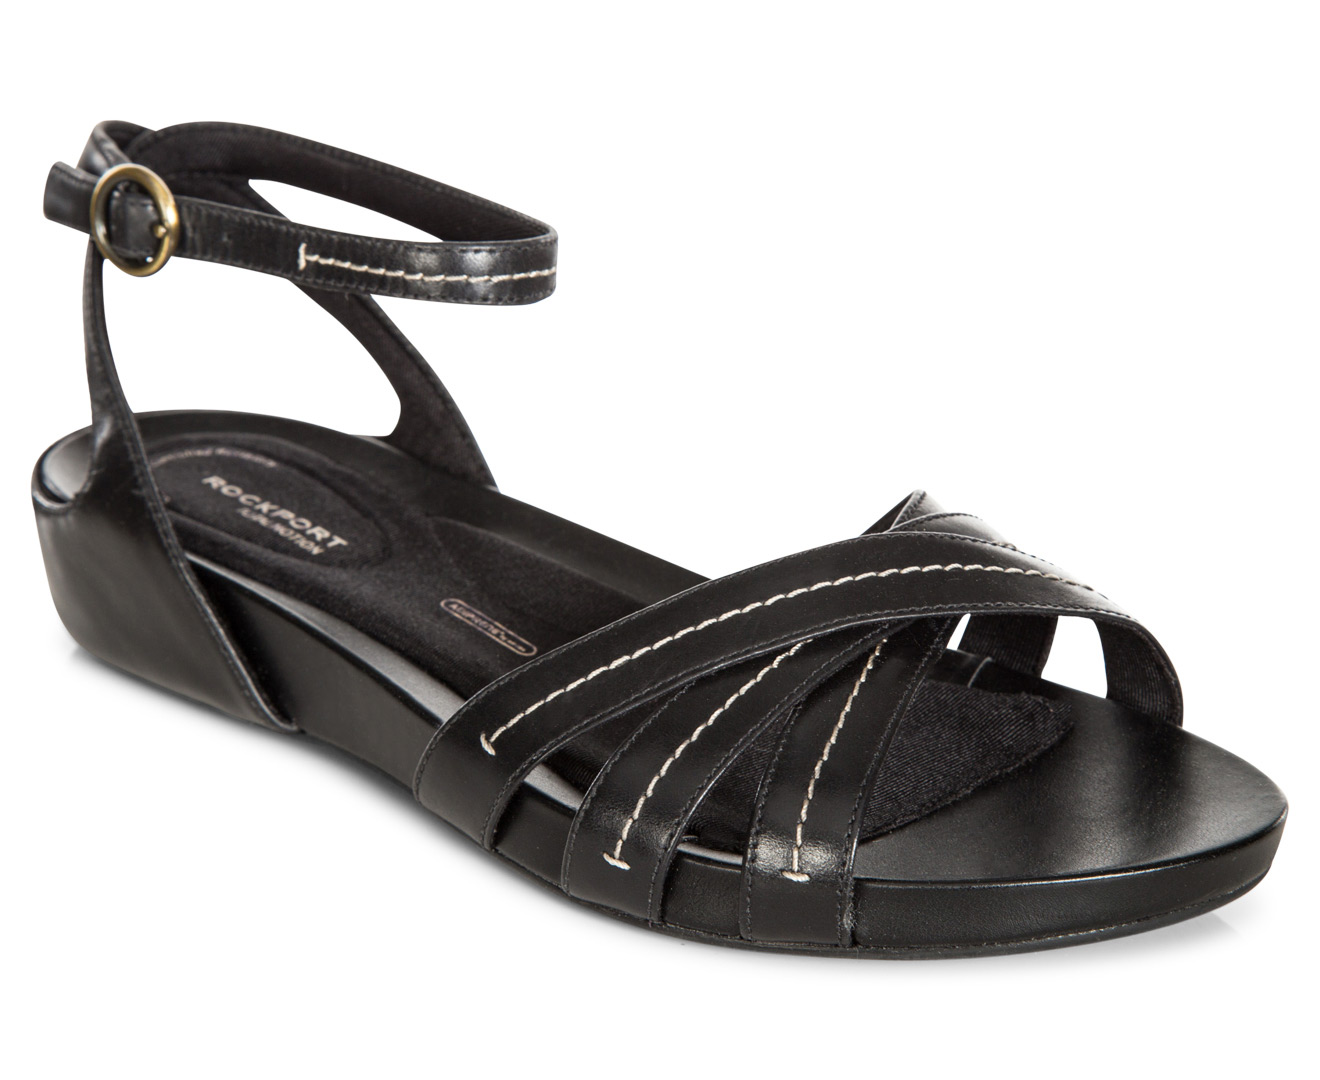 west rockport black girls personals Shop rockport® for some of the most comfortable heels ever made browse our collection of women's shoes featuring pumps, sandals, and dress shoes rockport.